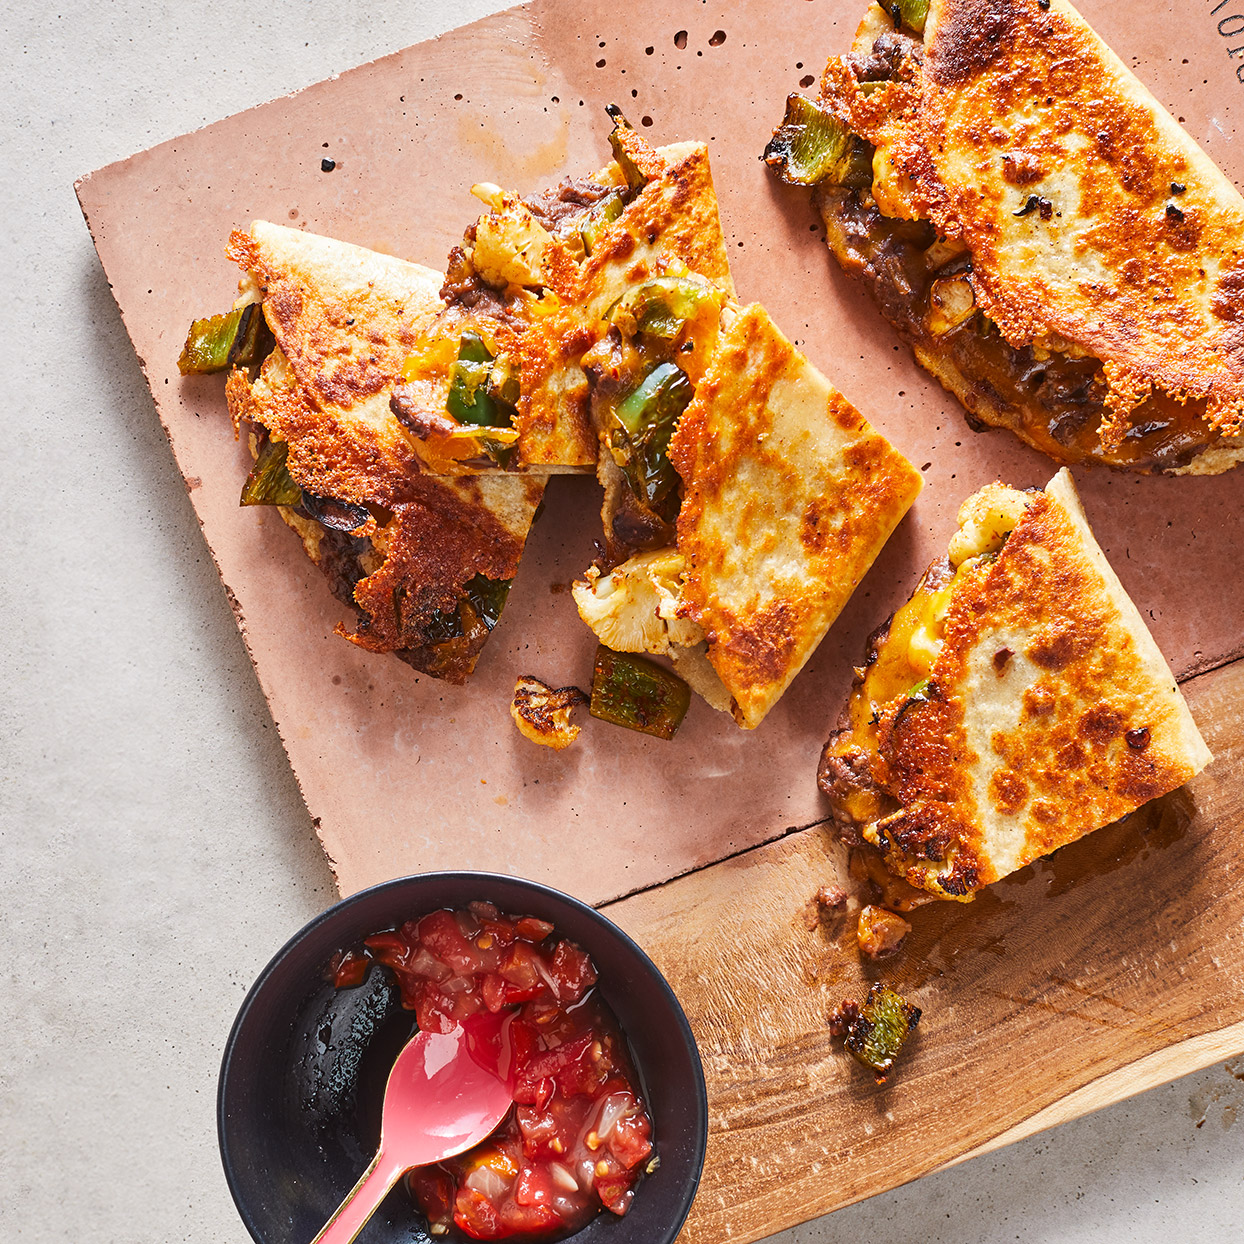 Poblano peppers add a touch of heat to these vegetarian quesadillas, but a sweet bell pepper is tasty, too, if you want something milder. Start these quesadillas in the oven and finish them off in a skillet for melty cheese and crispy tortillas.Source: EatingWell Magazine, March 2020